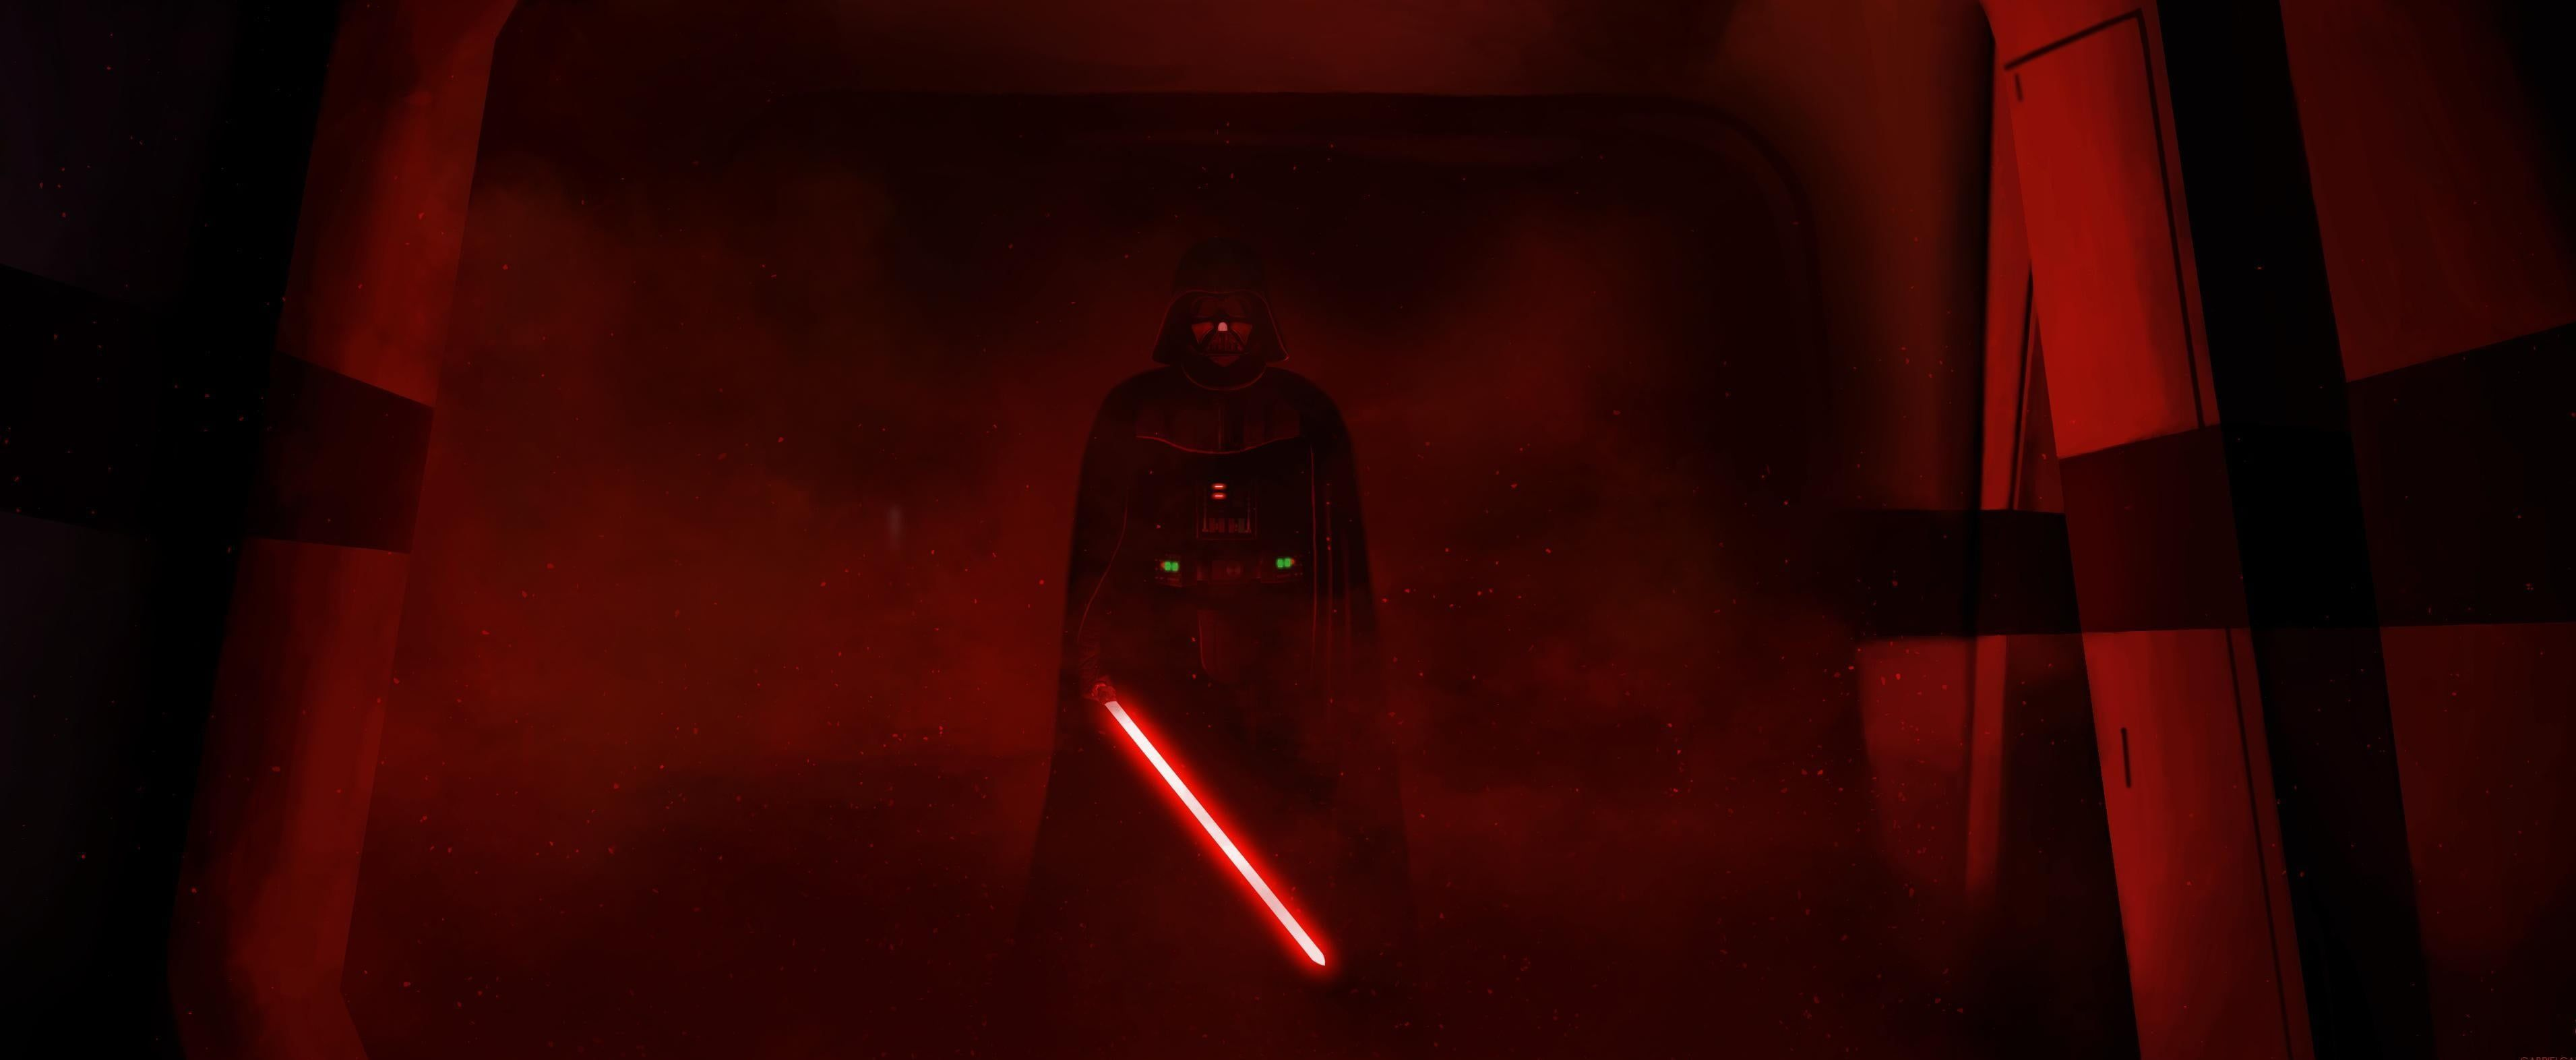 Star Wars Red Darth Vader Sith Lord Man Sith Pearls Uniform Seifuku Cape The Best Rogue On Star Wars Wallpaper Darth Vader Wallpaper Darth Vader Artwork